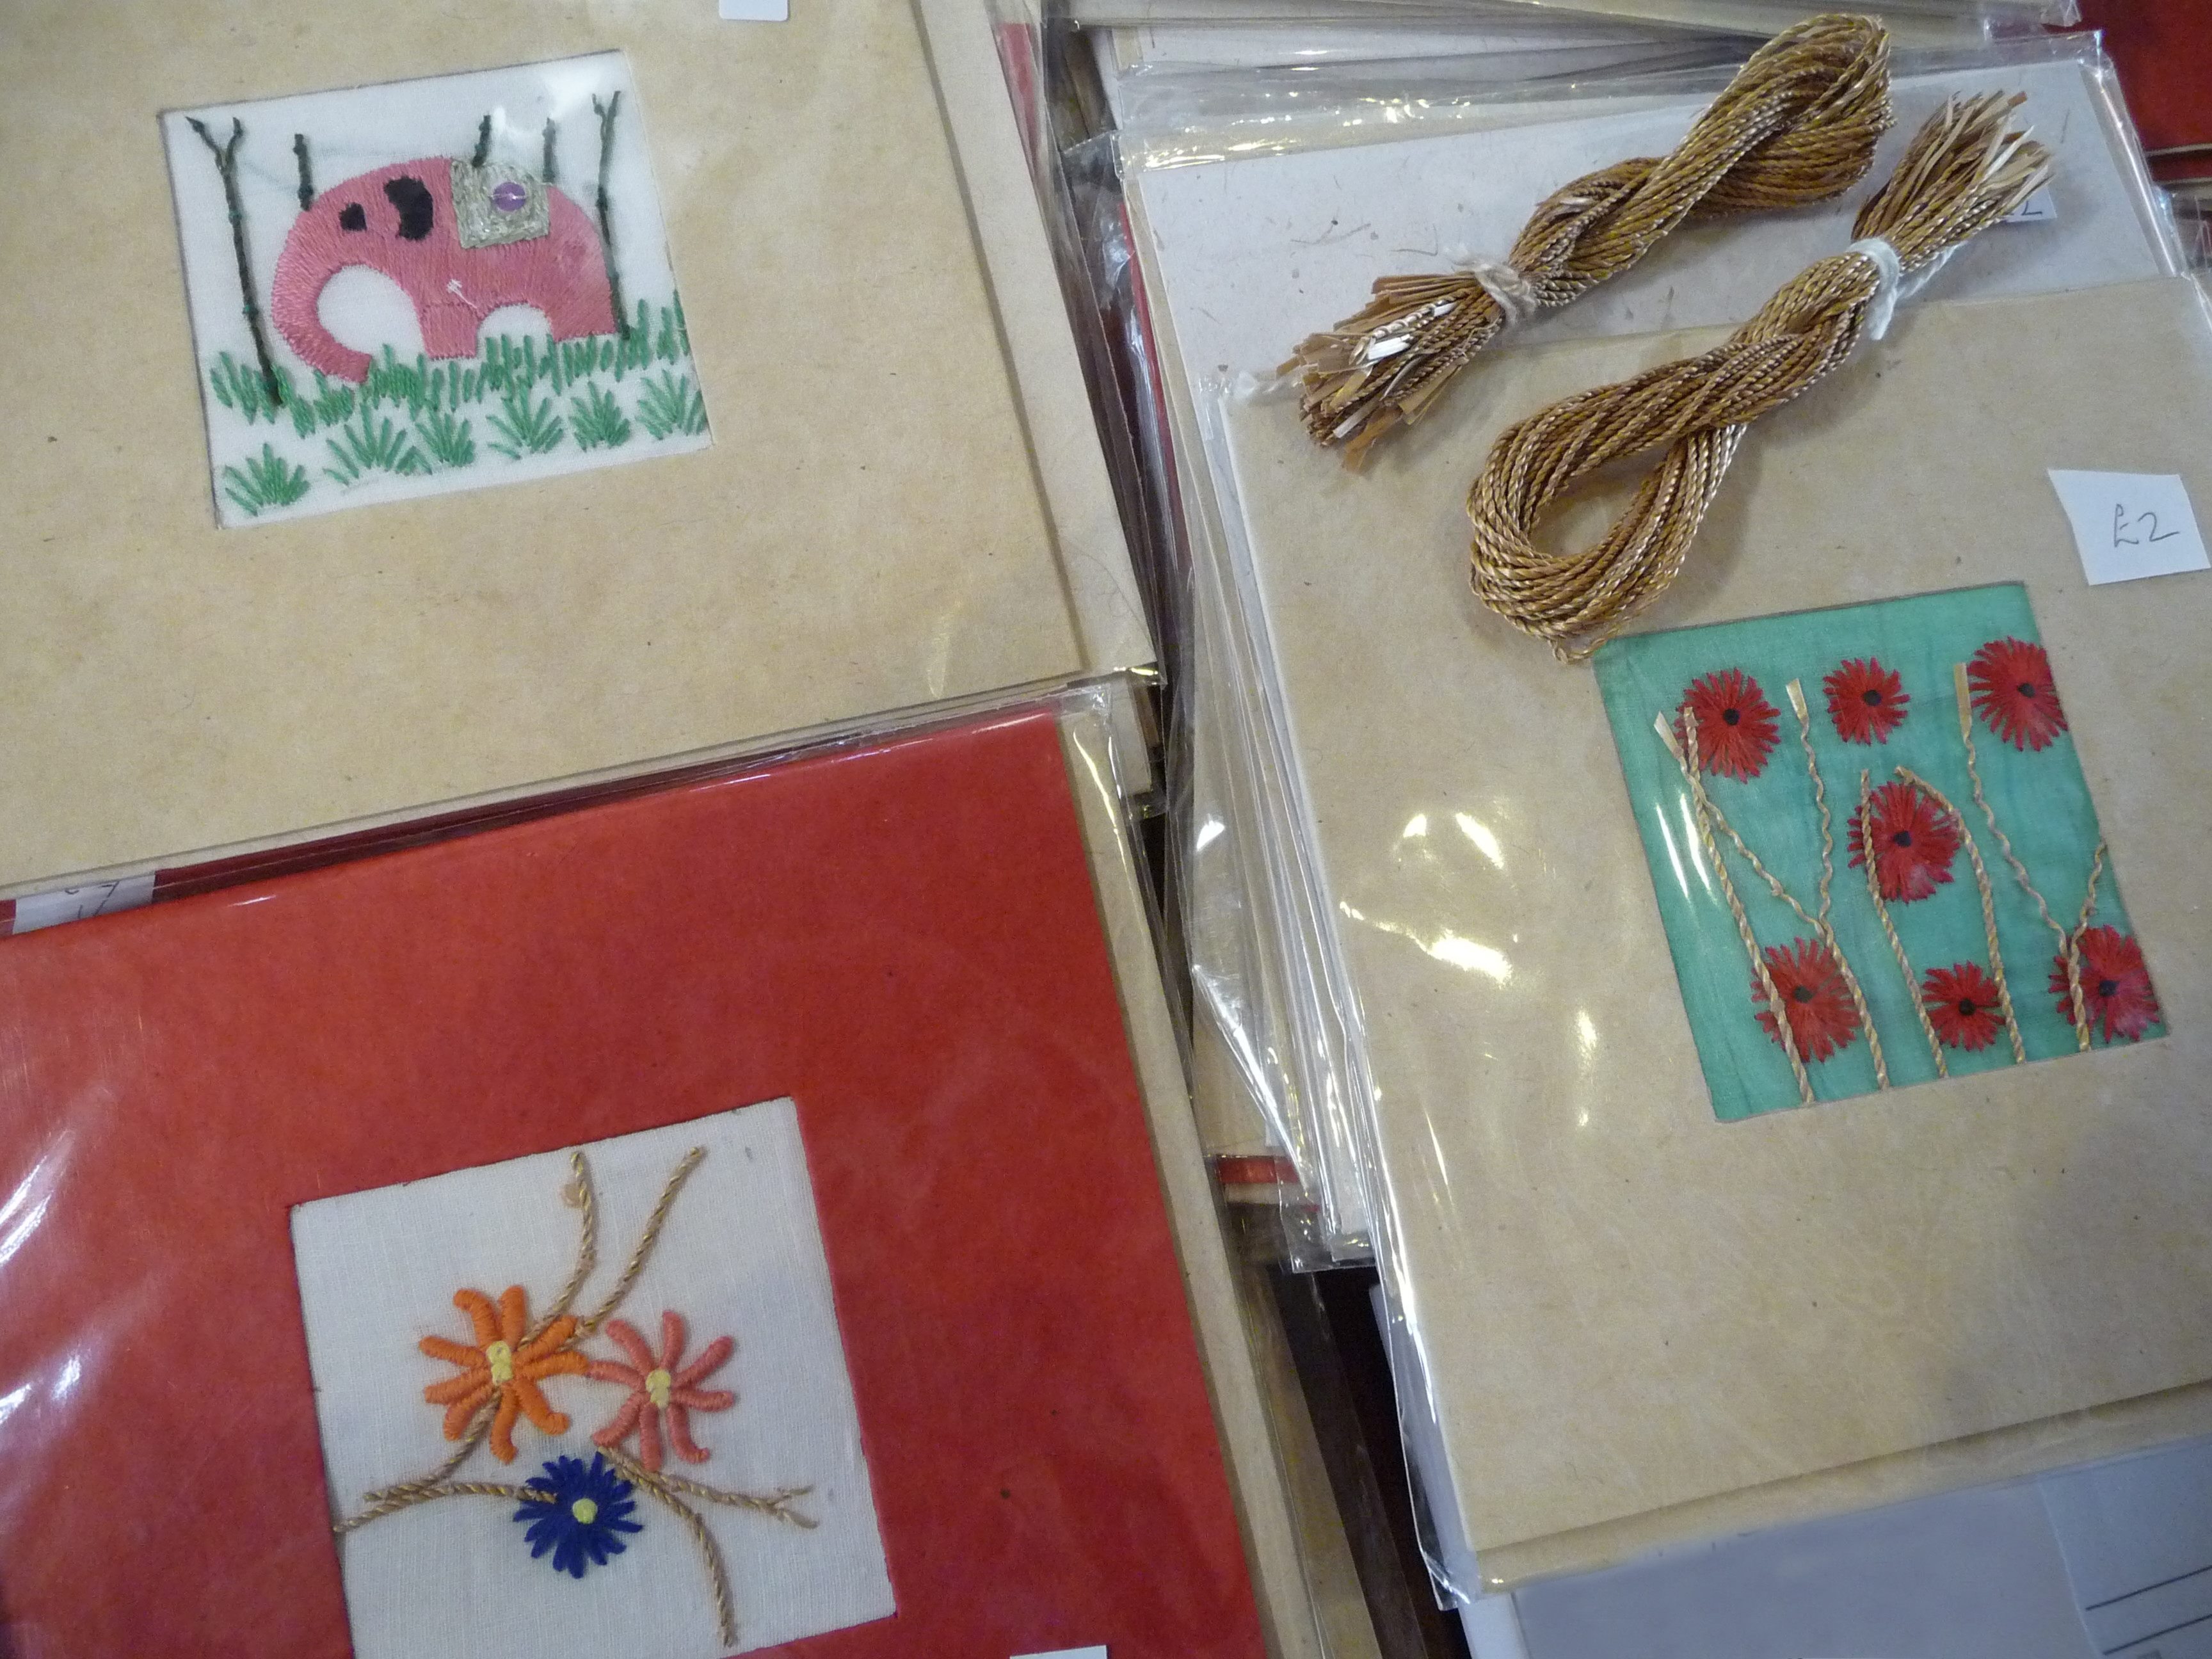 embroidered cards for sale which feature wheatstraw thread which has been spun in Sreepur Village, Bangladesh